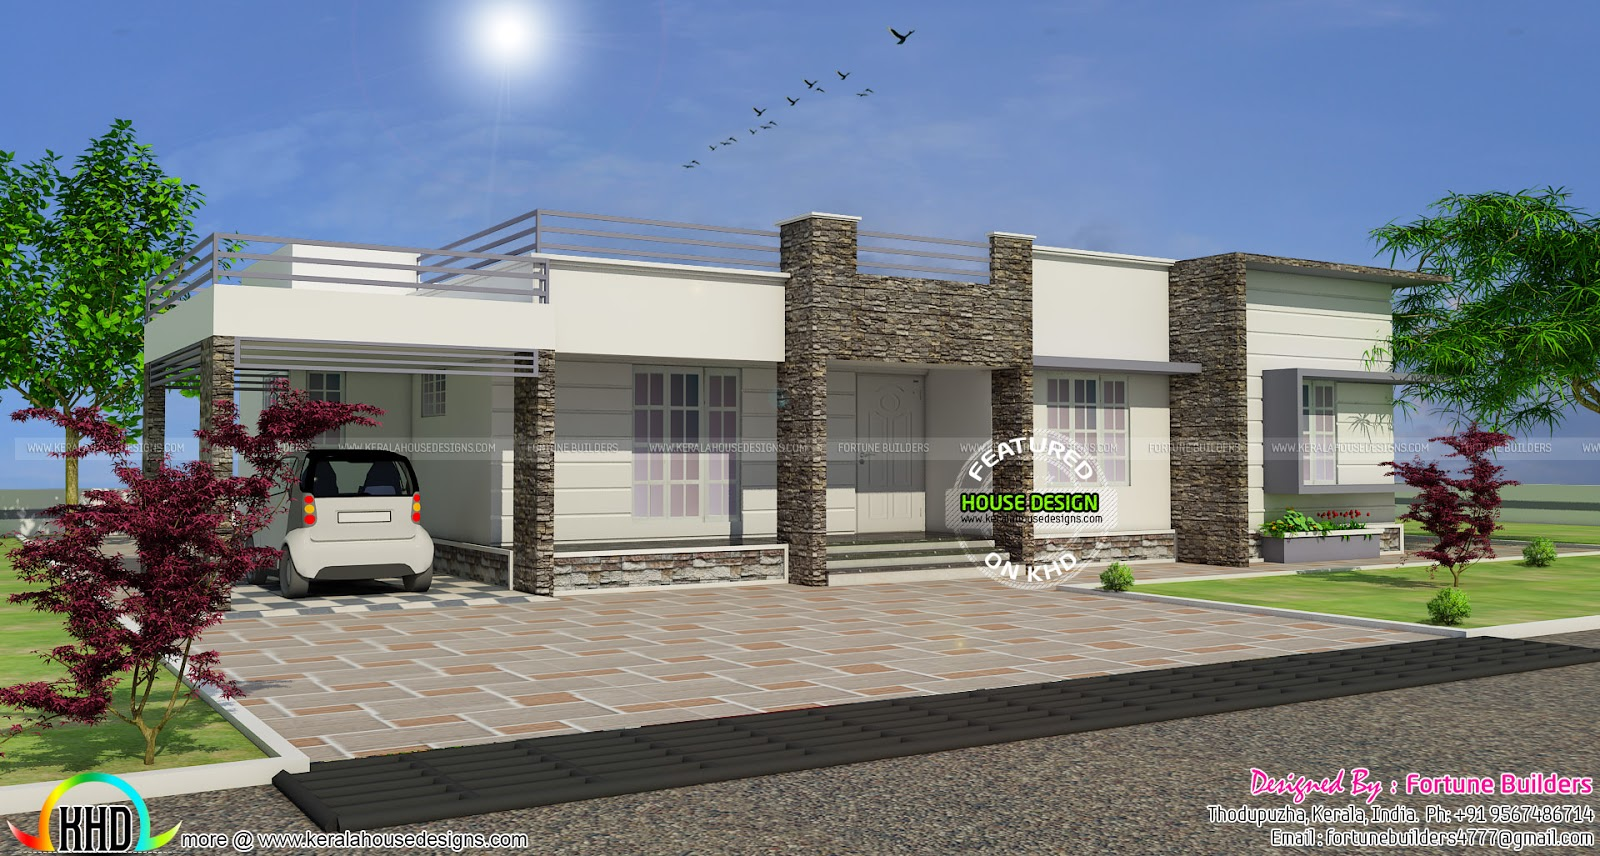 20 Lakhs House In 1400 Sq Ft Kerala Home Design And